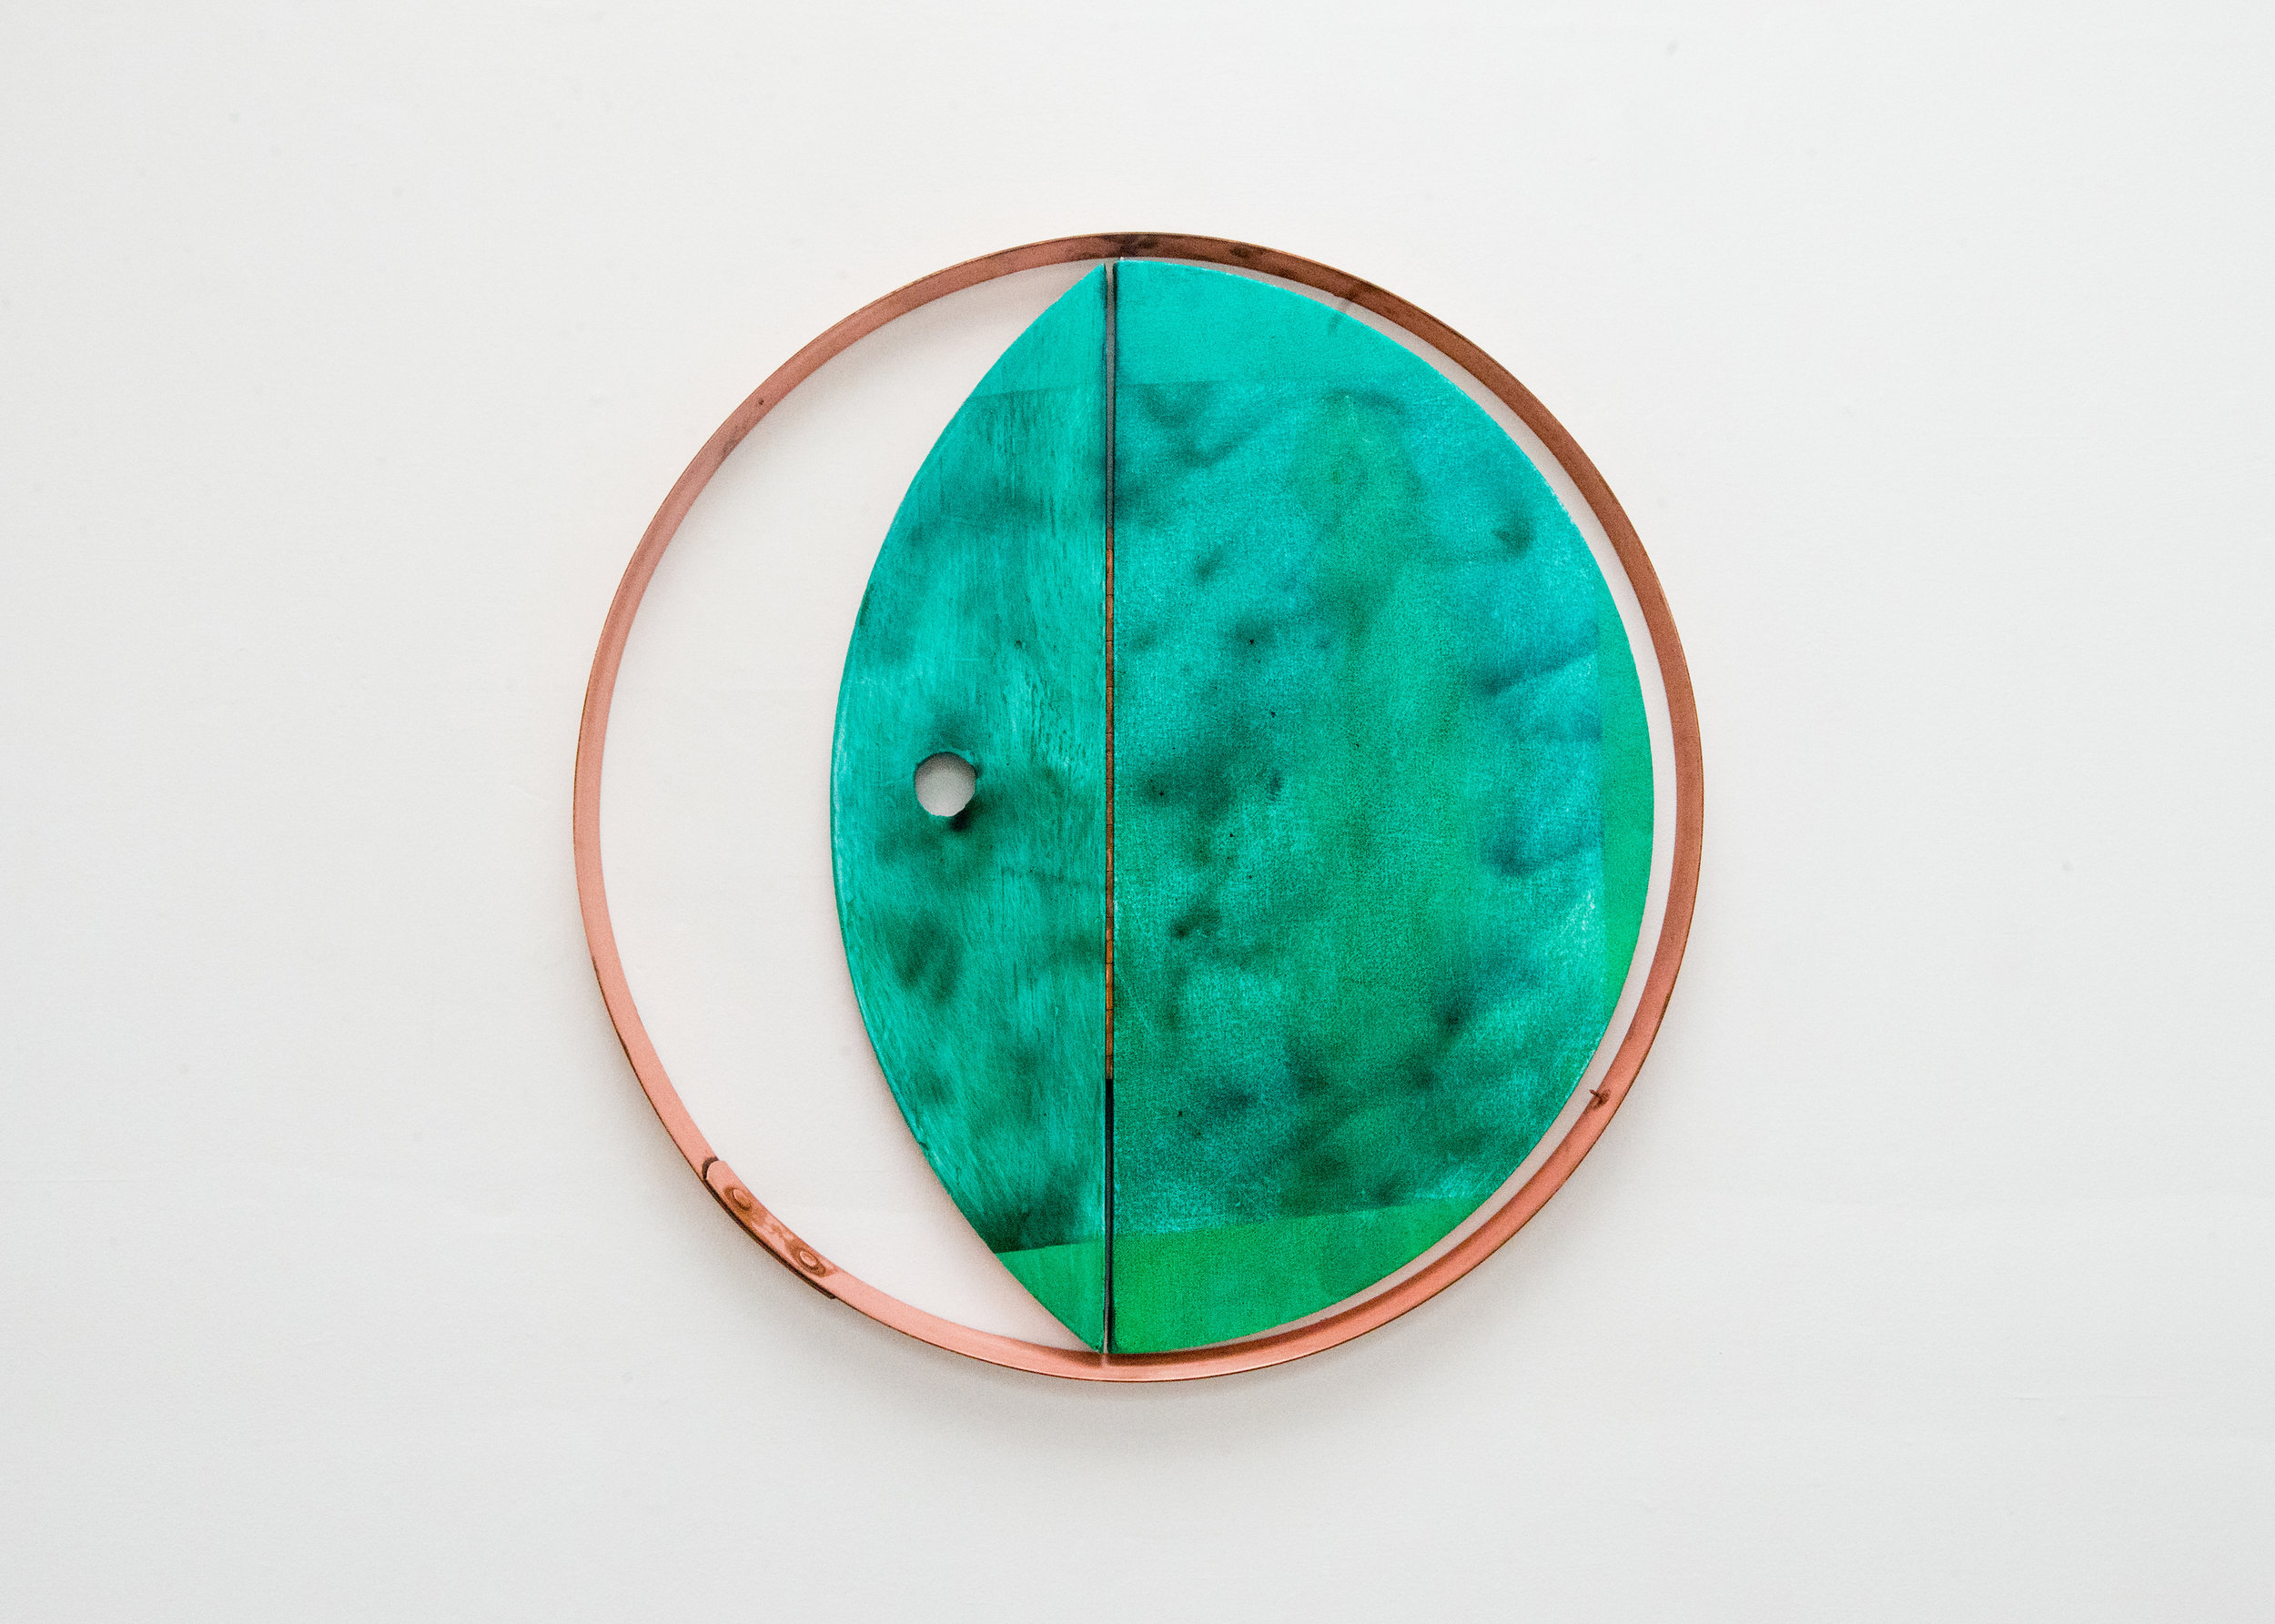 Lana Williams,  Waxing Waning , 2018. Acrylic, oil, oil stick, smoke pigment, copper plated steel. 24.5 x 24.5 inches.